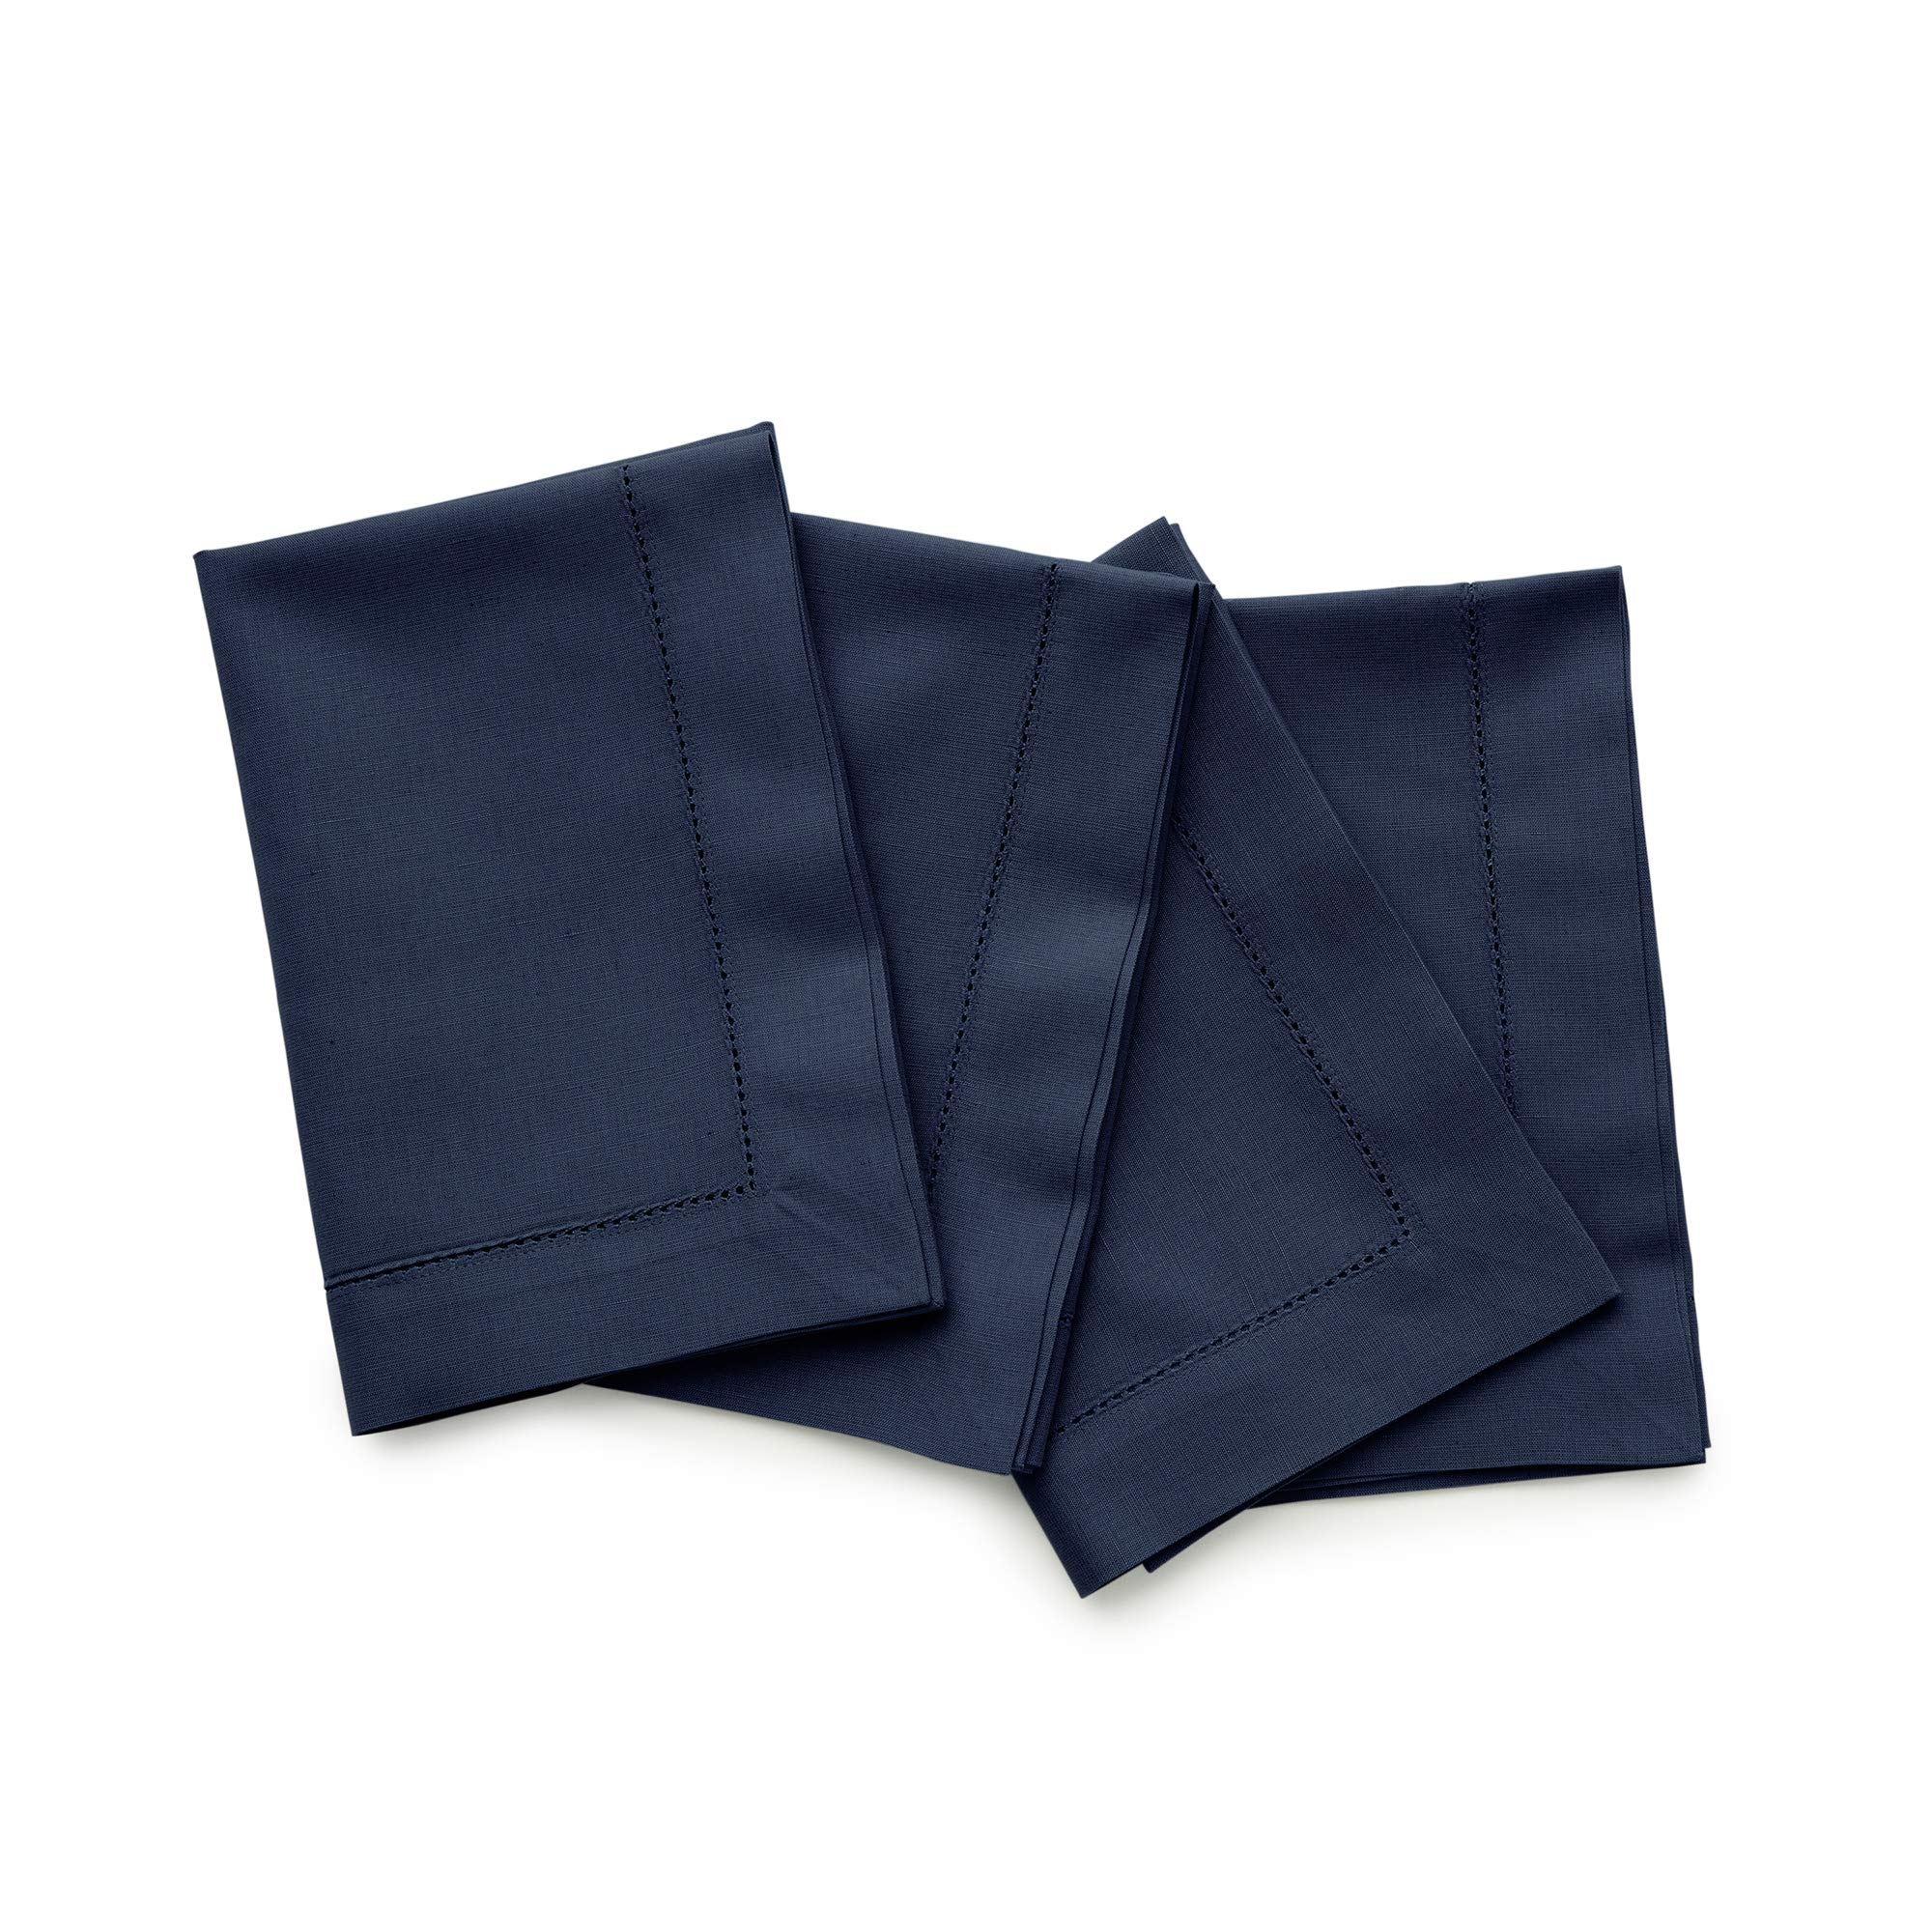 Solino Home Hemstitch Cotton Linen Dinner Napkins - Set of 4, 20 x 20 Inch Navy Natural Fabric - Machine Washable Handcrafted with Mitered Corners by Solino Home